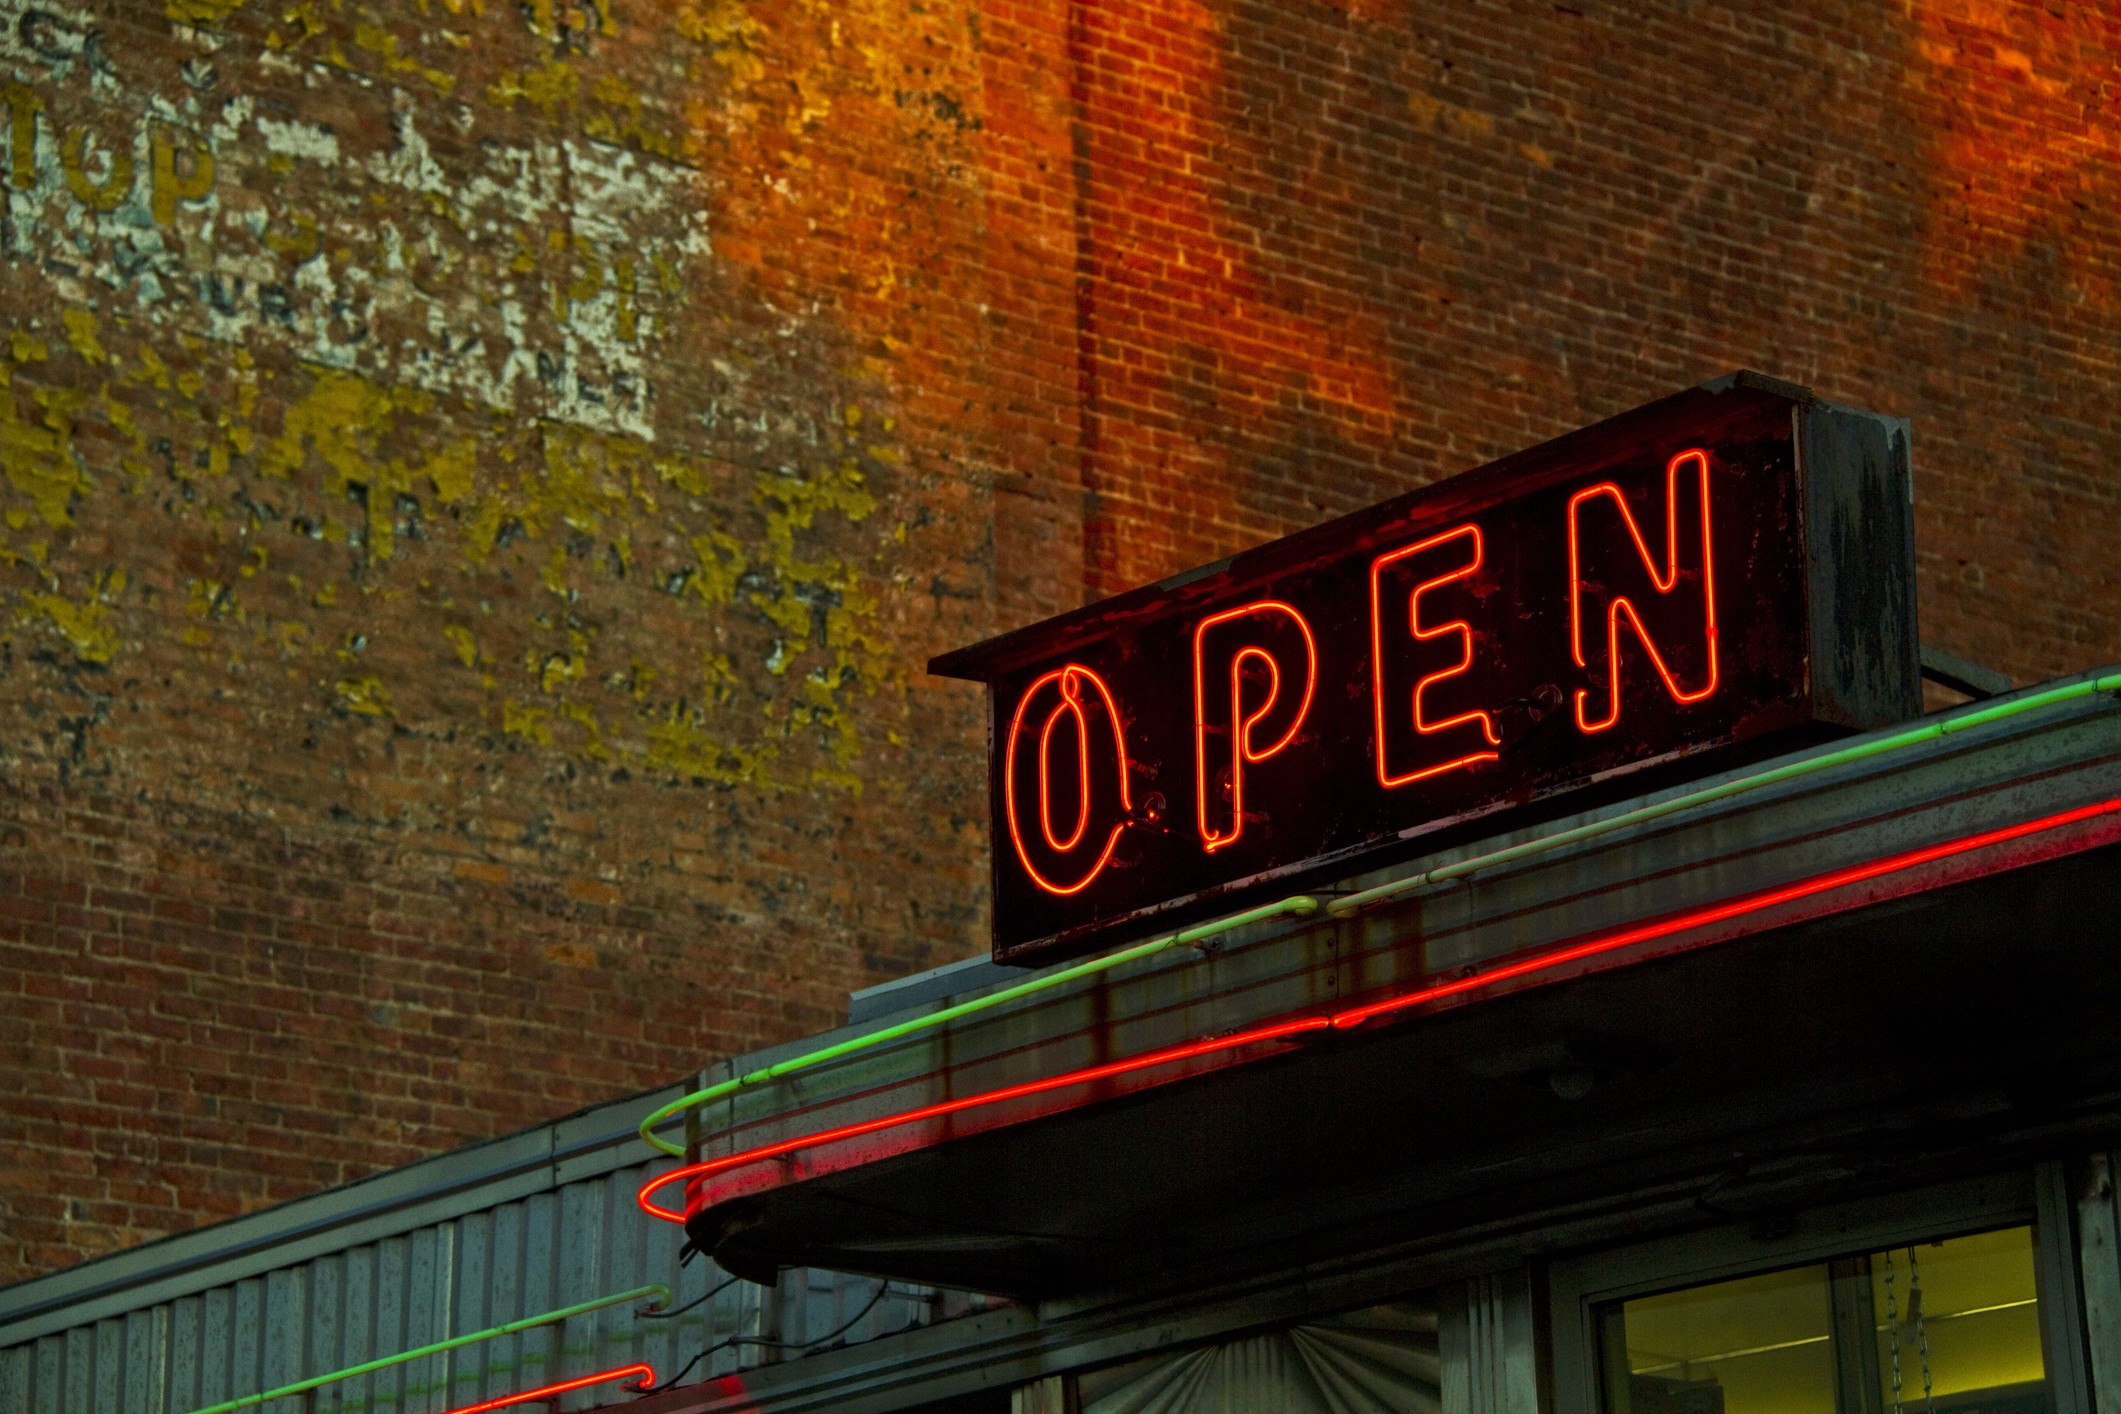 A photo of a neon OPEN sign on top of a business storefront.